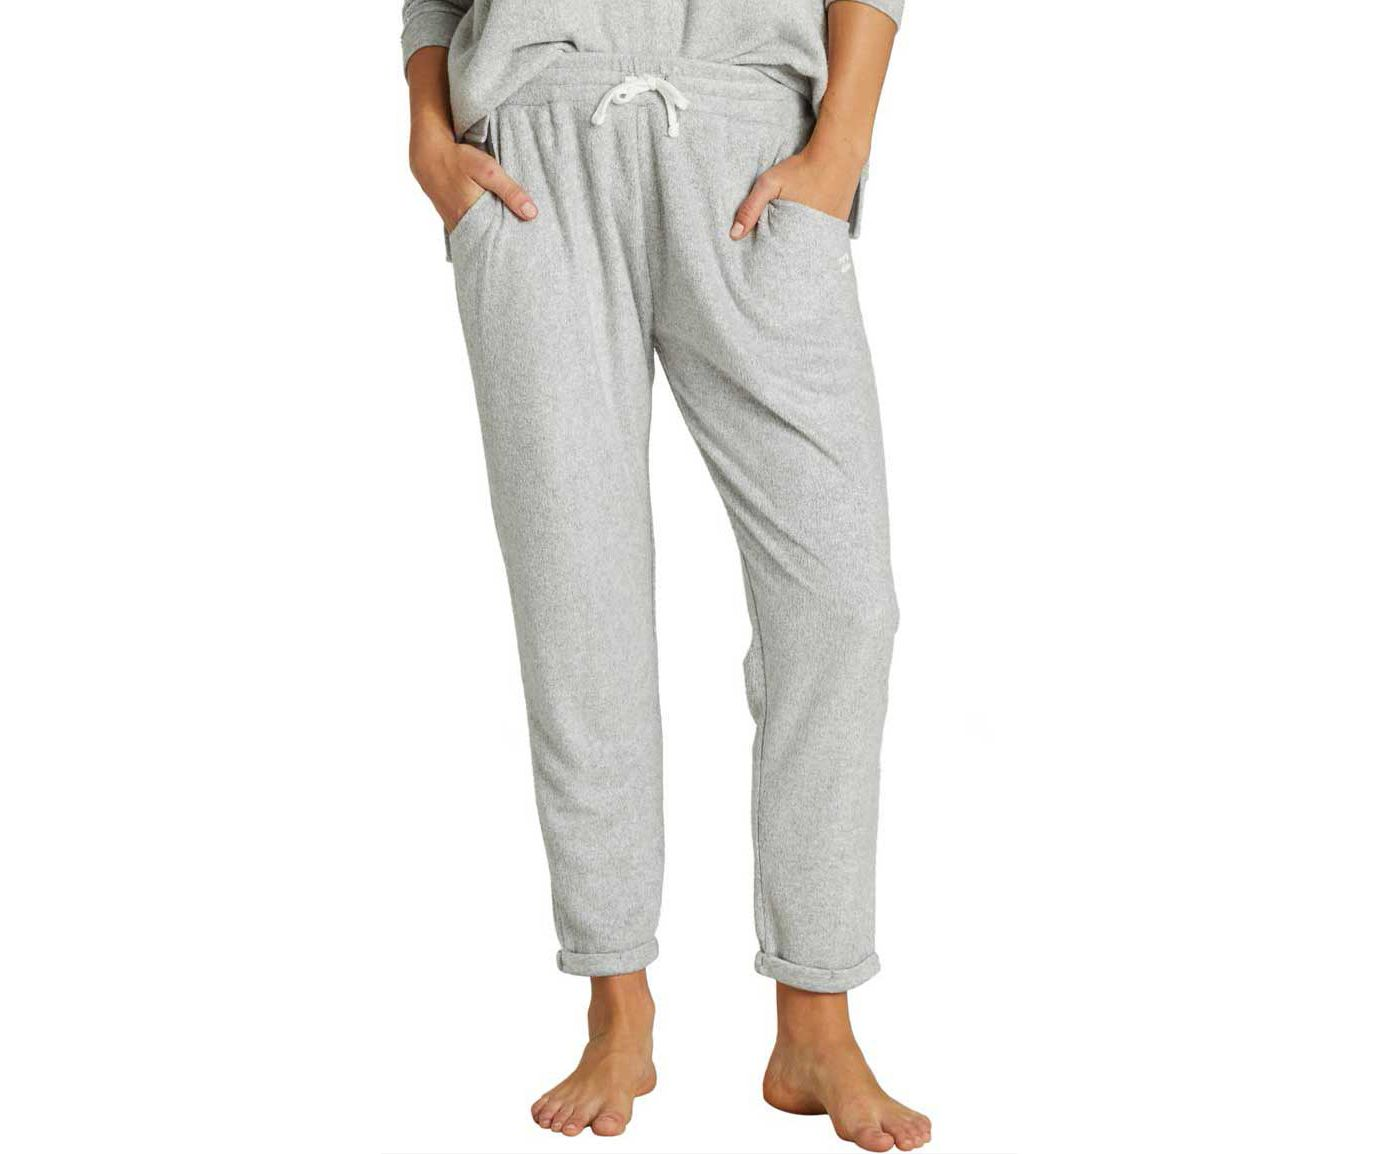 Billabong Women's So Cozy Pants